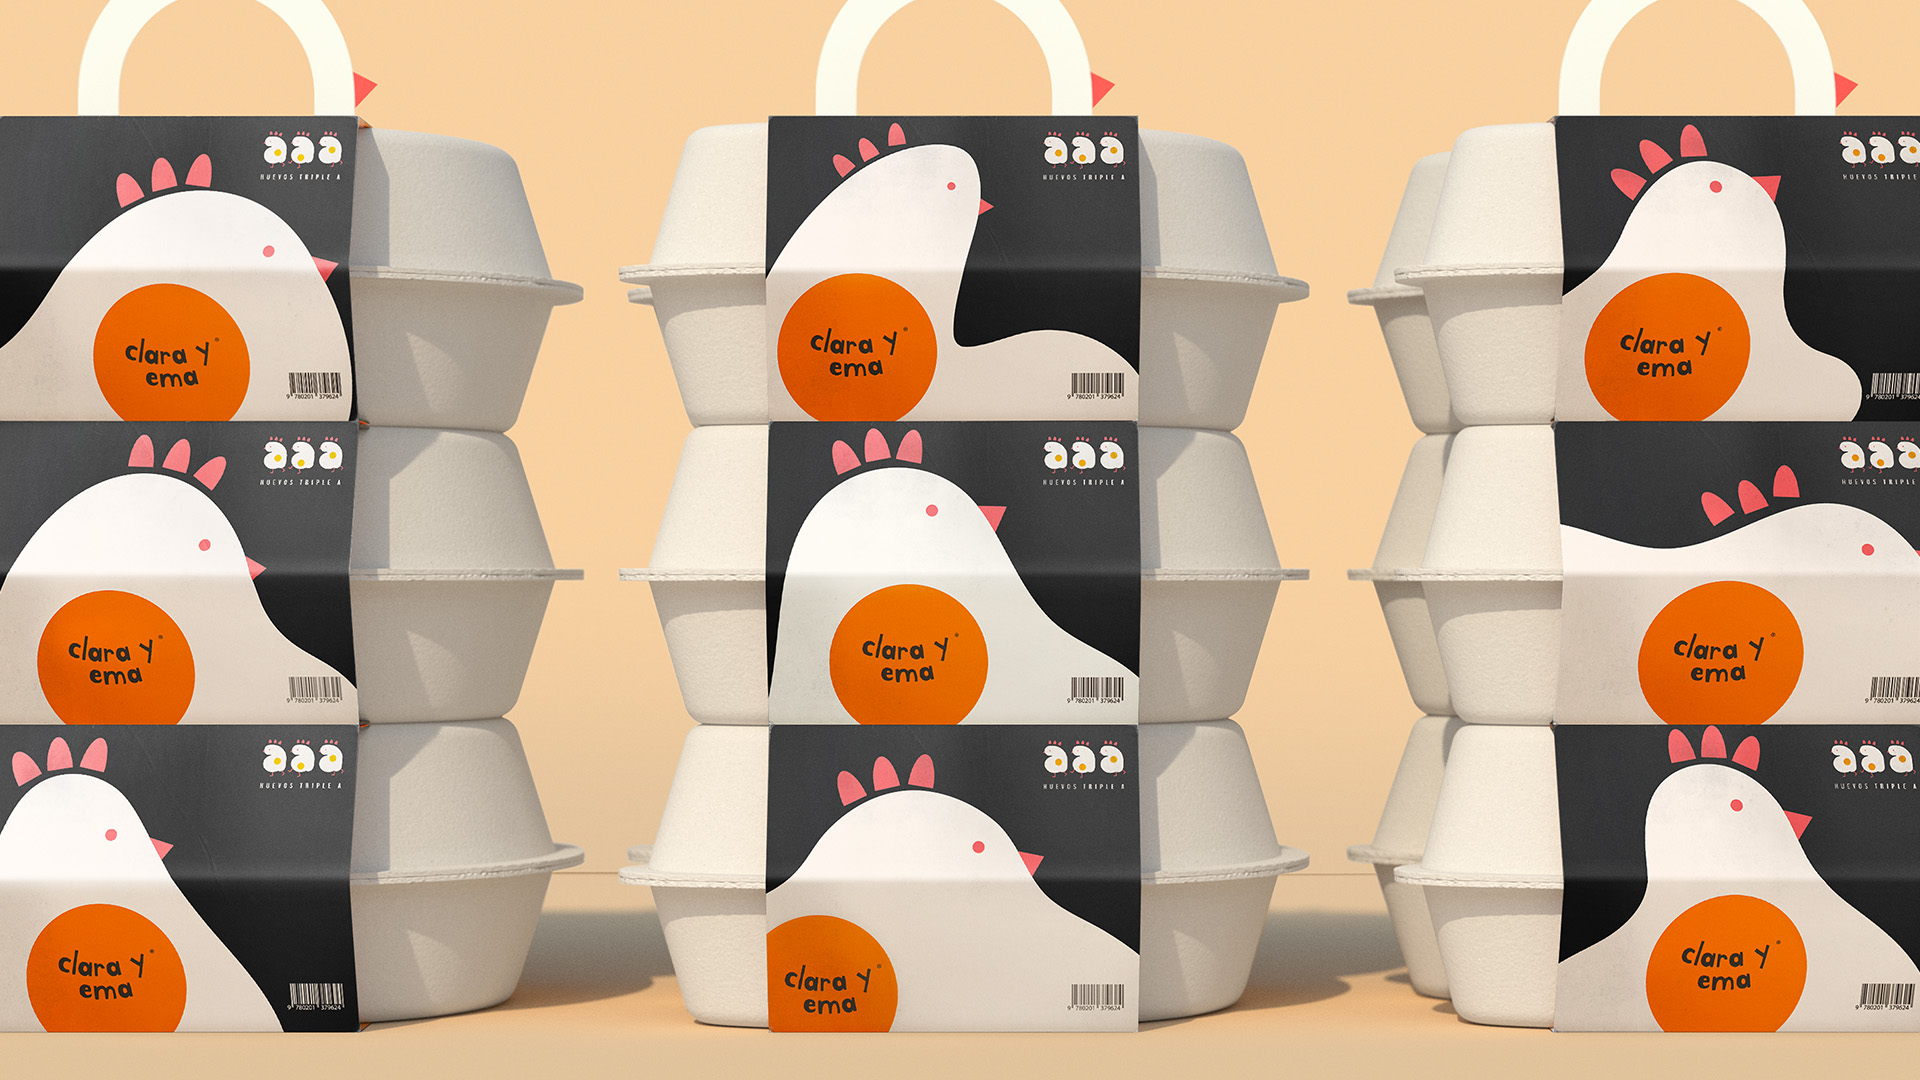 Liquid Flowing Branding for Eggs Created by Creamos